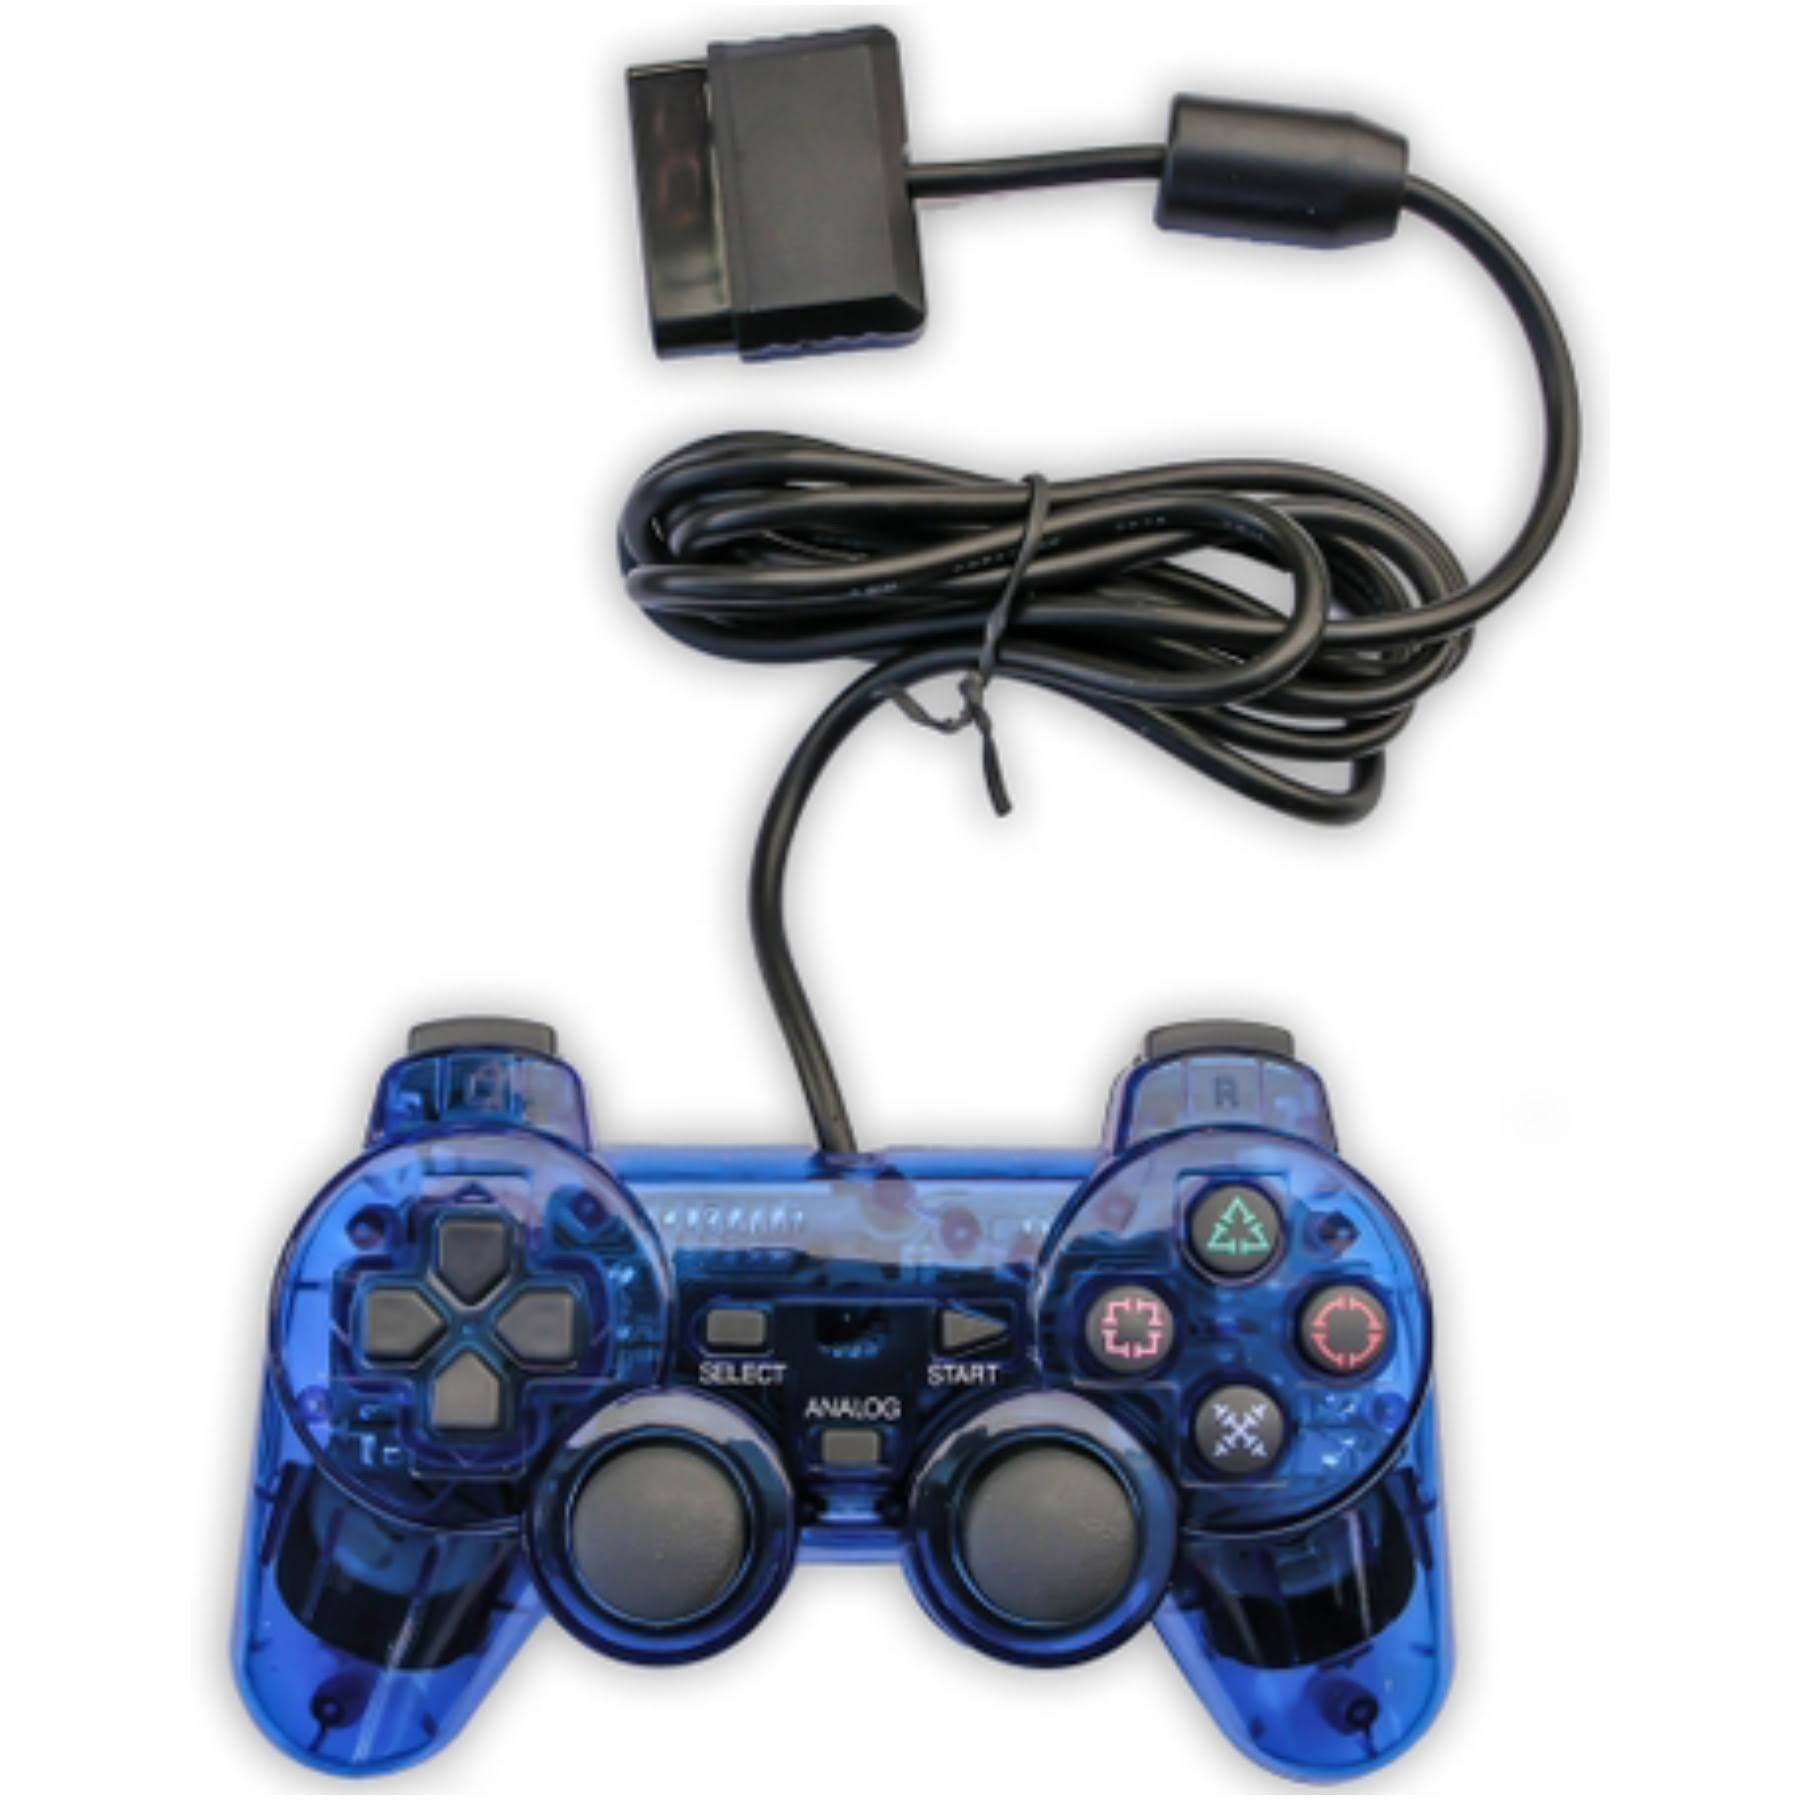 Old Skool PS2 Analog Dual Shock Controller - For Sony PlayStation 2, Blue